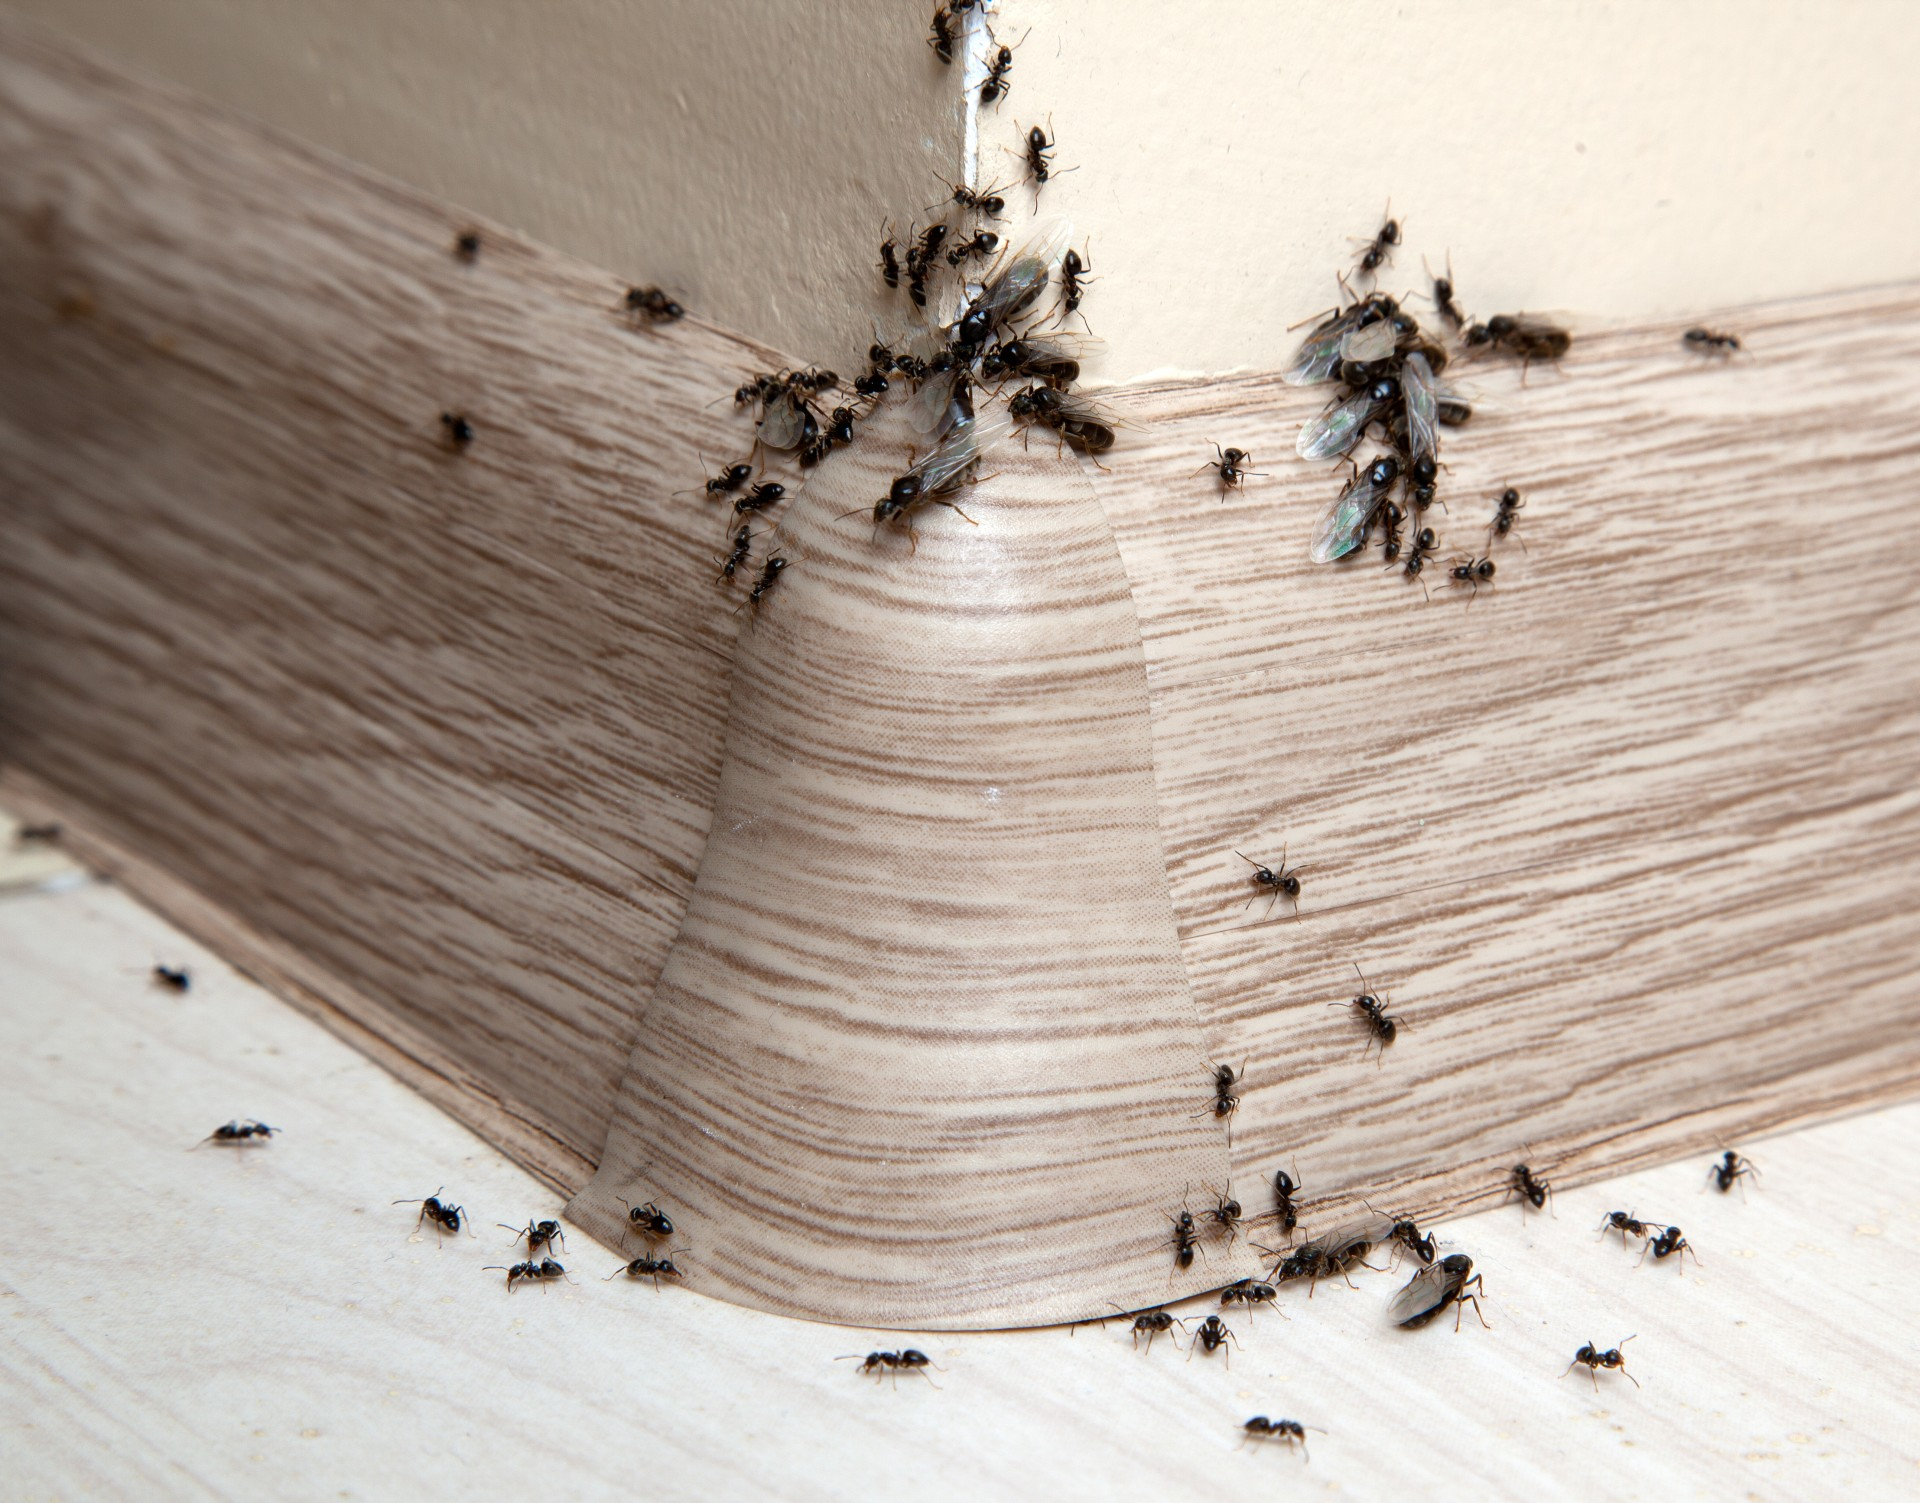 Ant Infestation, Pest Control in Sydenham, SE26. Call Now 020 8166 9746